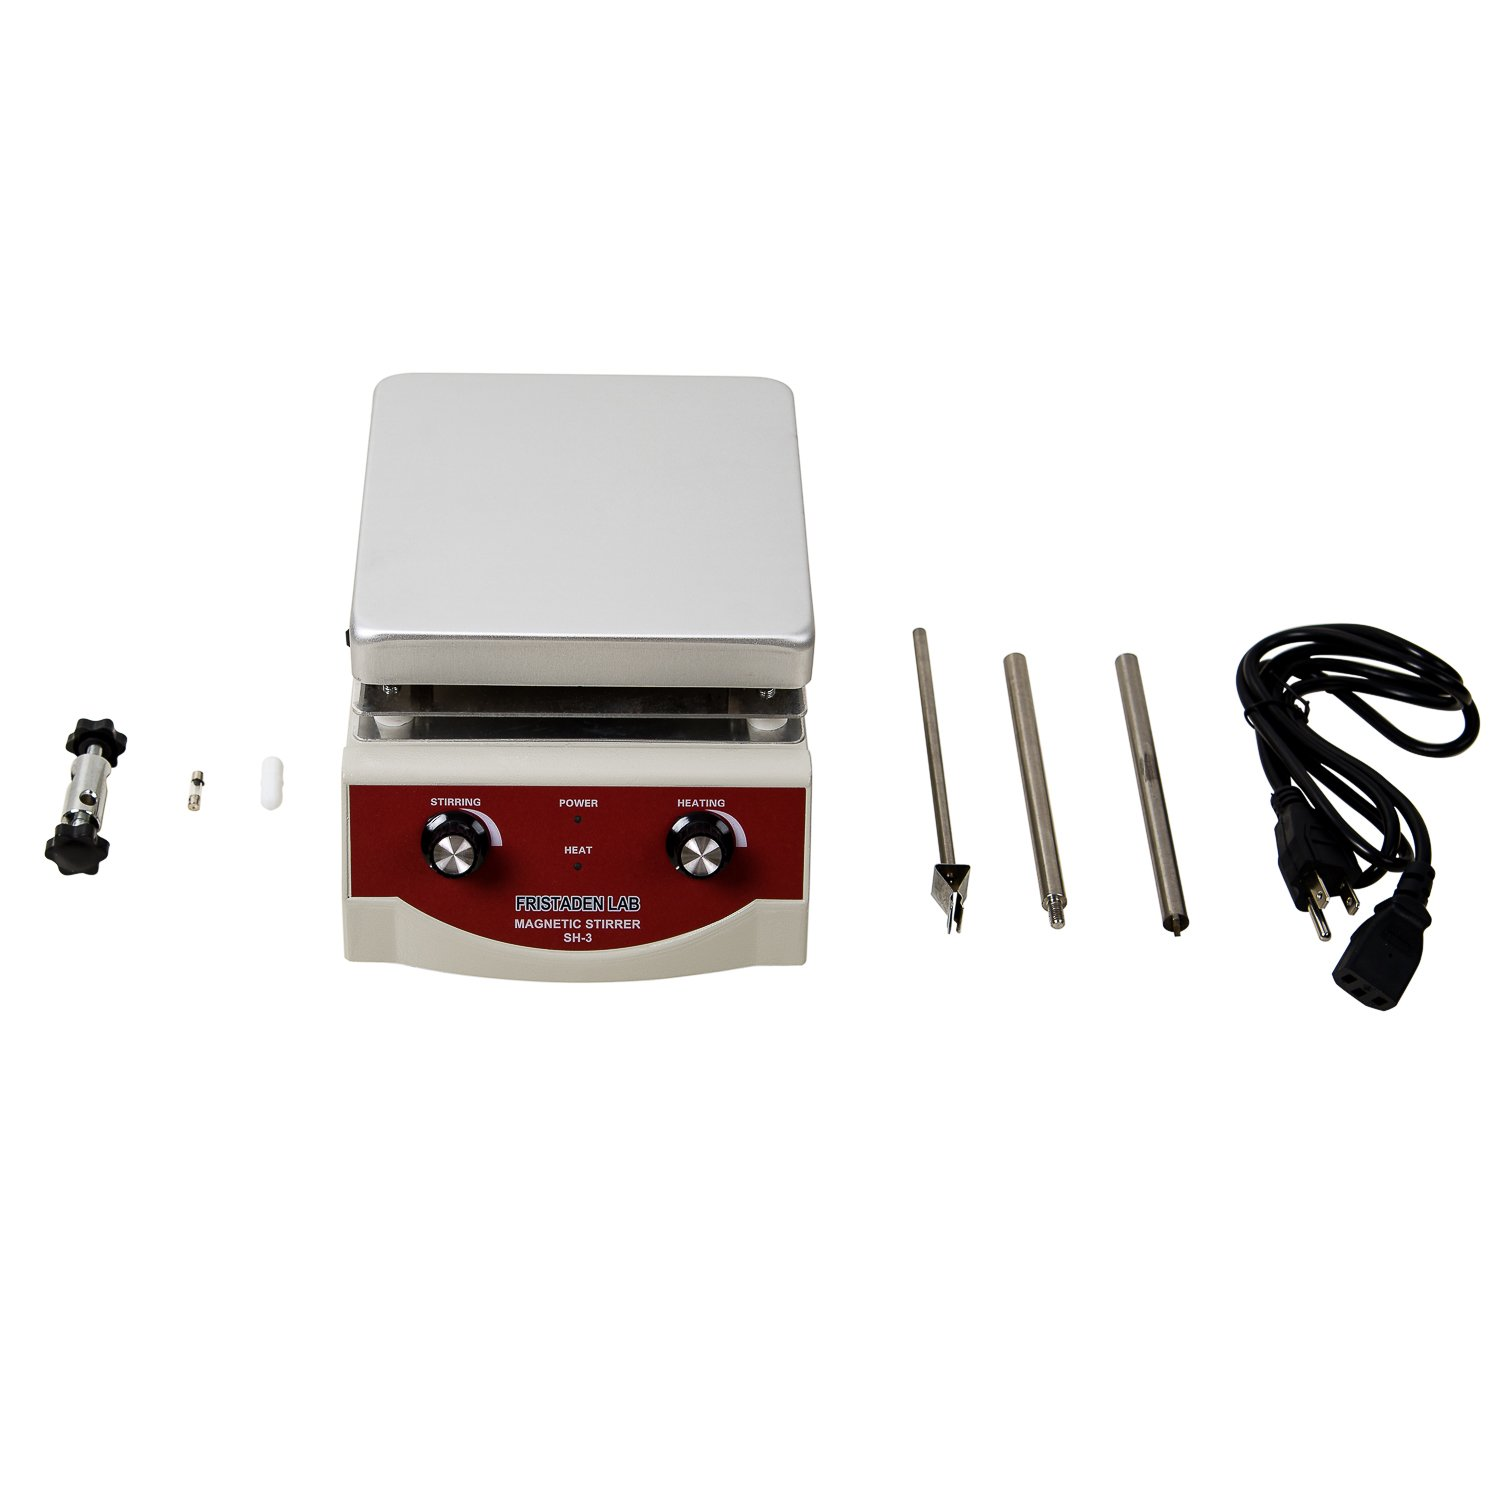 Fristaden Lab SH-3 Magnetic Stirrer Hot Plate, Stir Plate, Magnetic Mixer Dual Controls for Heating and Stirring 3,000mL, 100-1600rpm, 500W, 350°C by Fristaden Lab (Image #4)